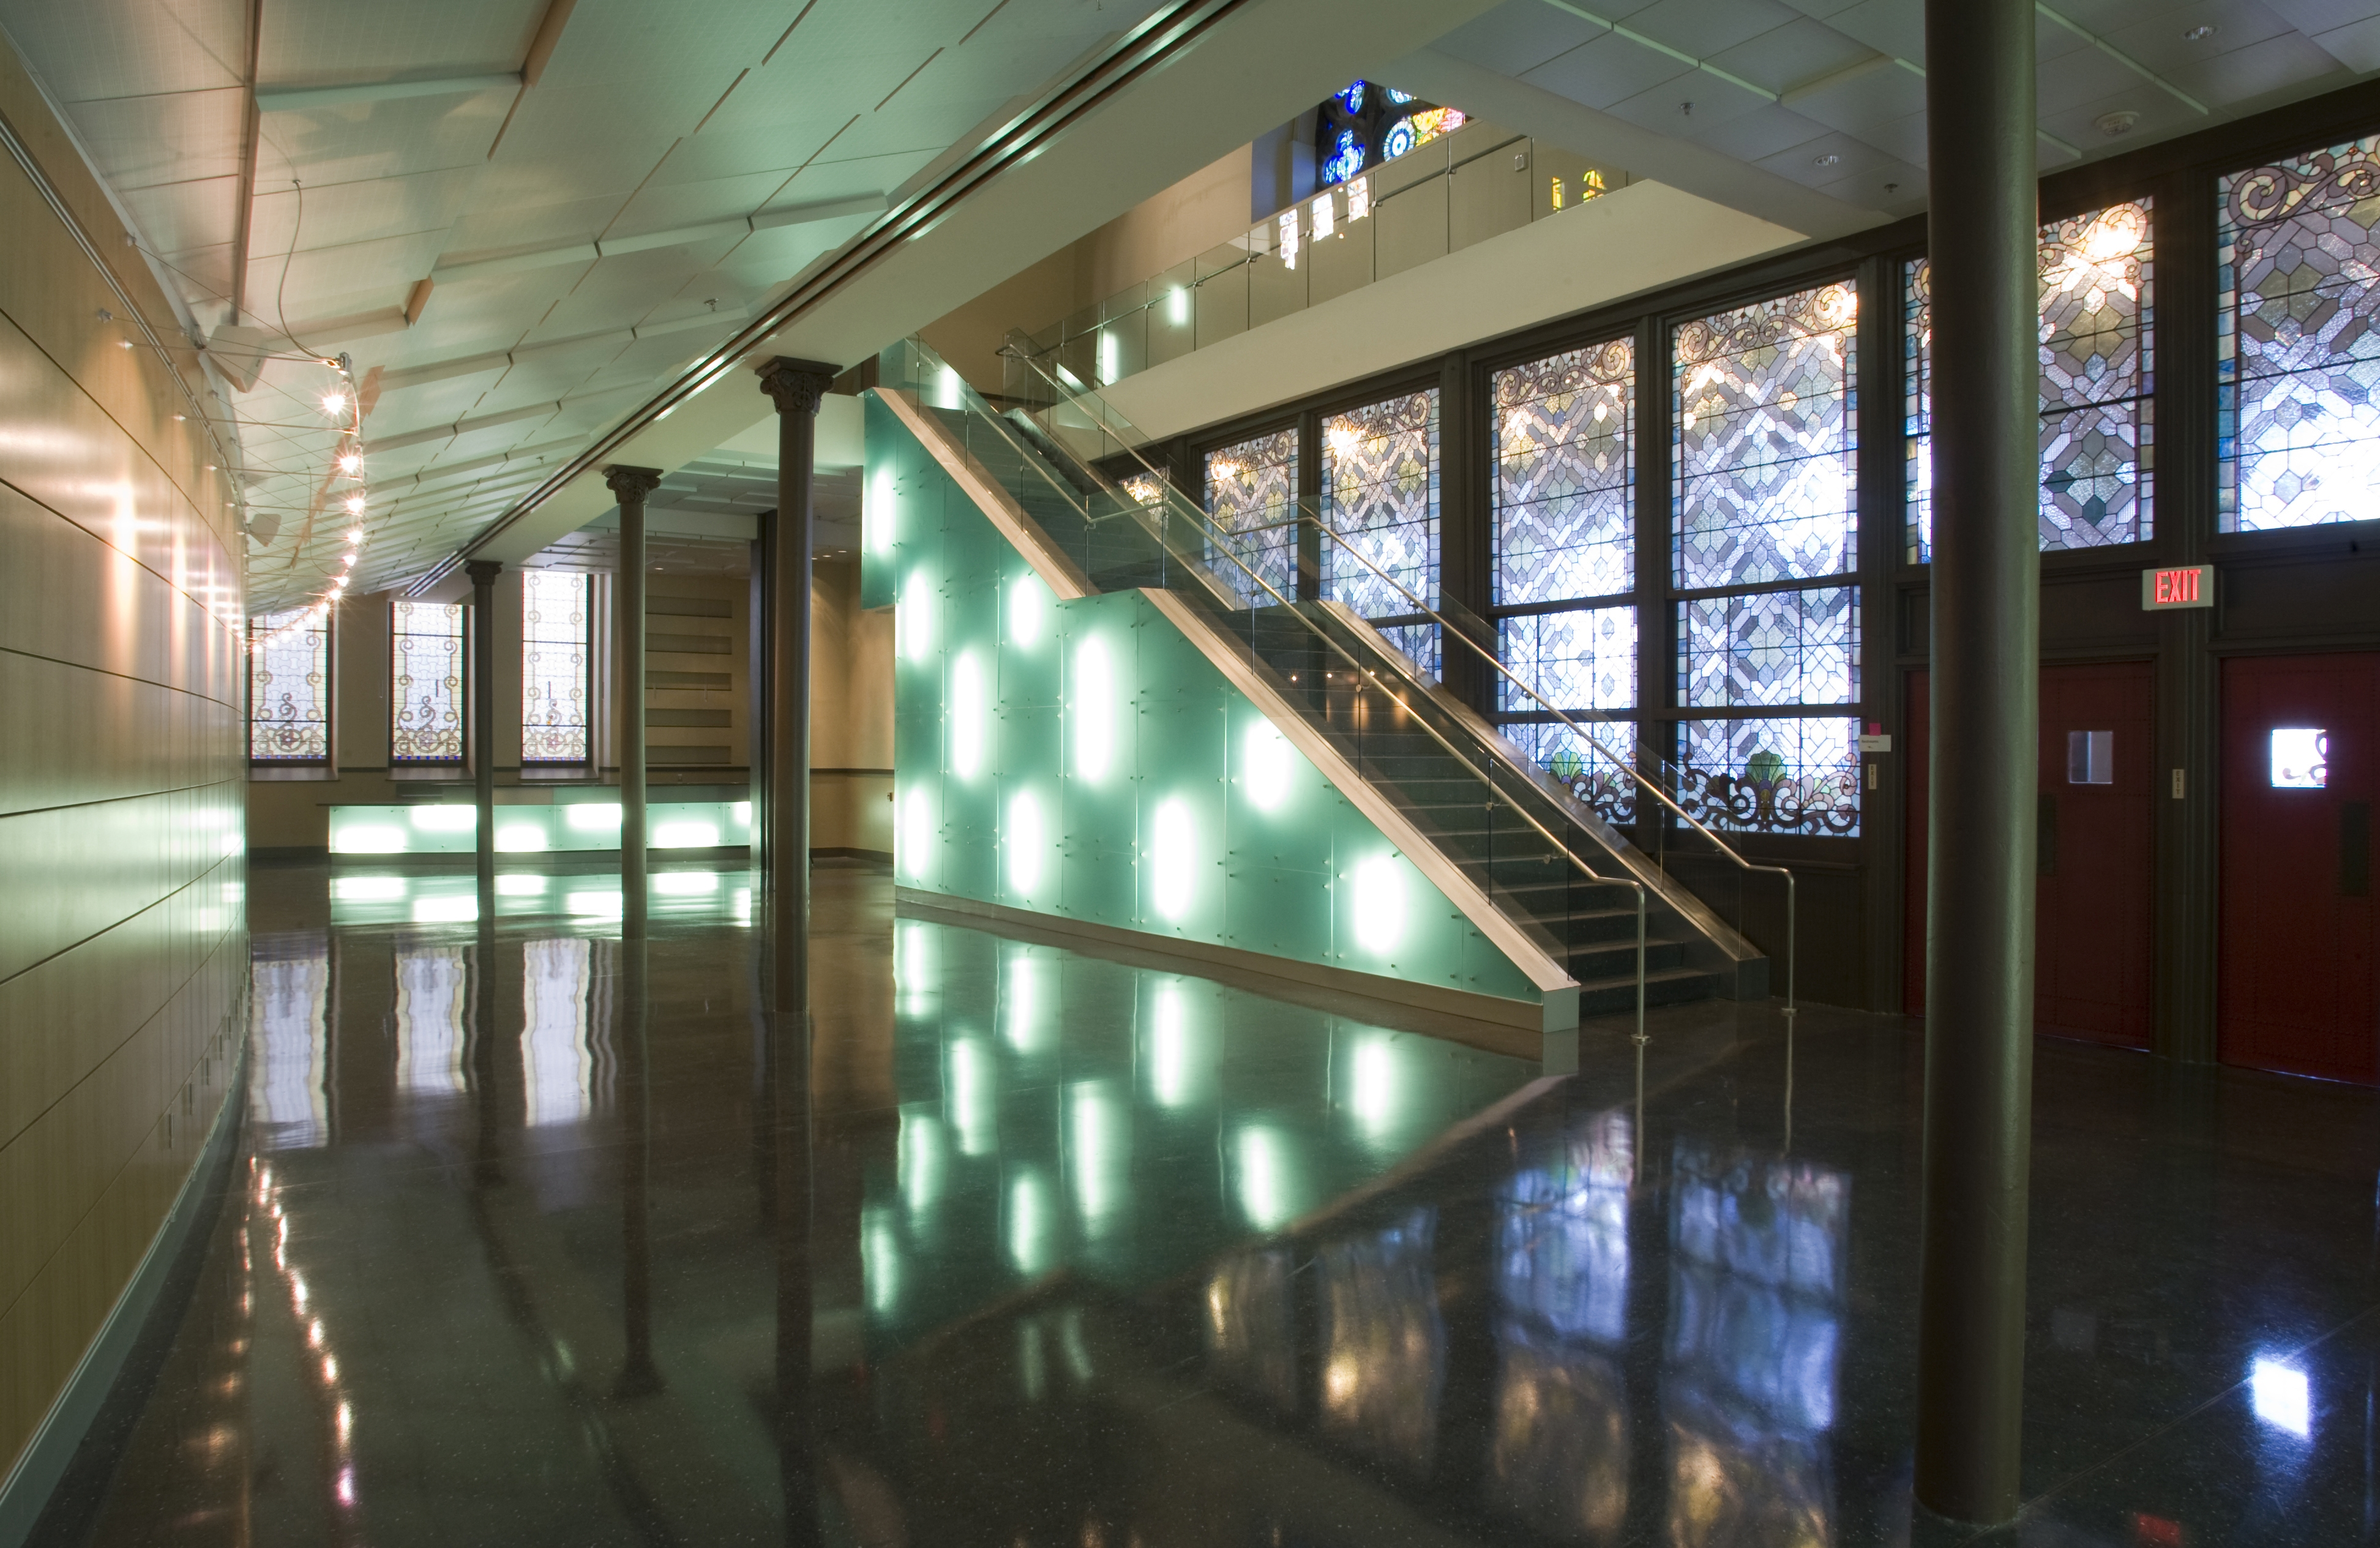 Performance hall lobby with illuminated staircase and stained glass windows